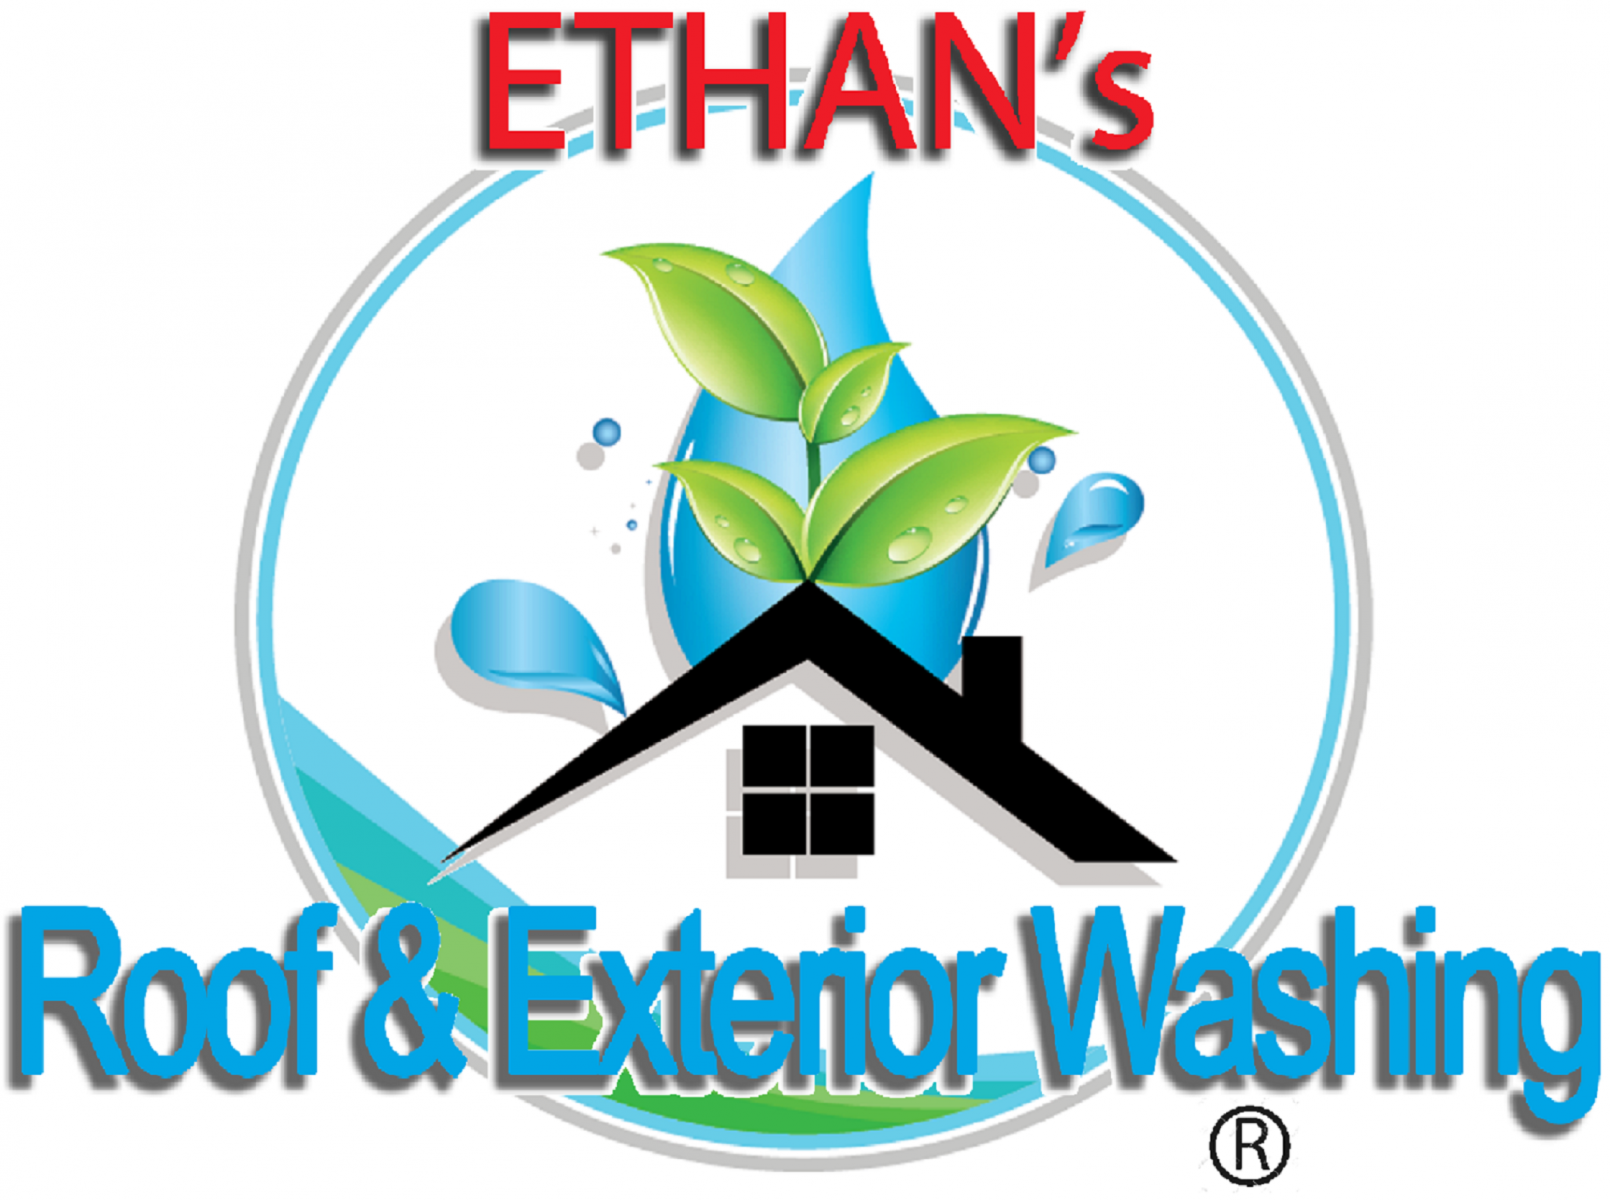 Ethans Roof Exterior Washing logo